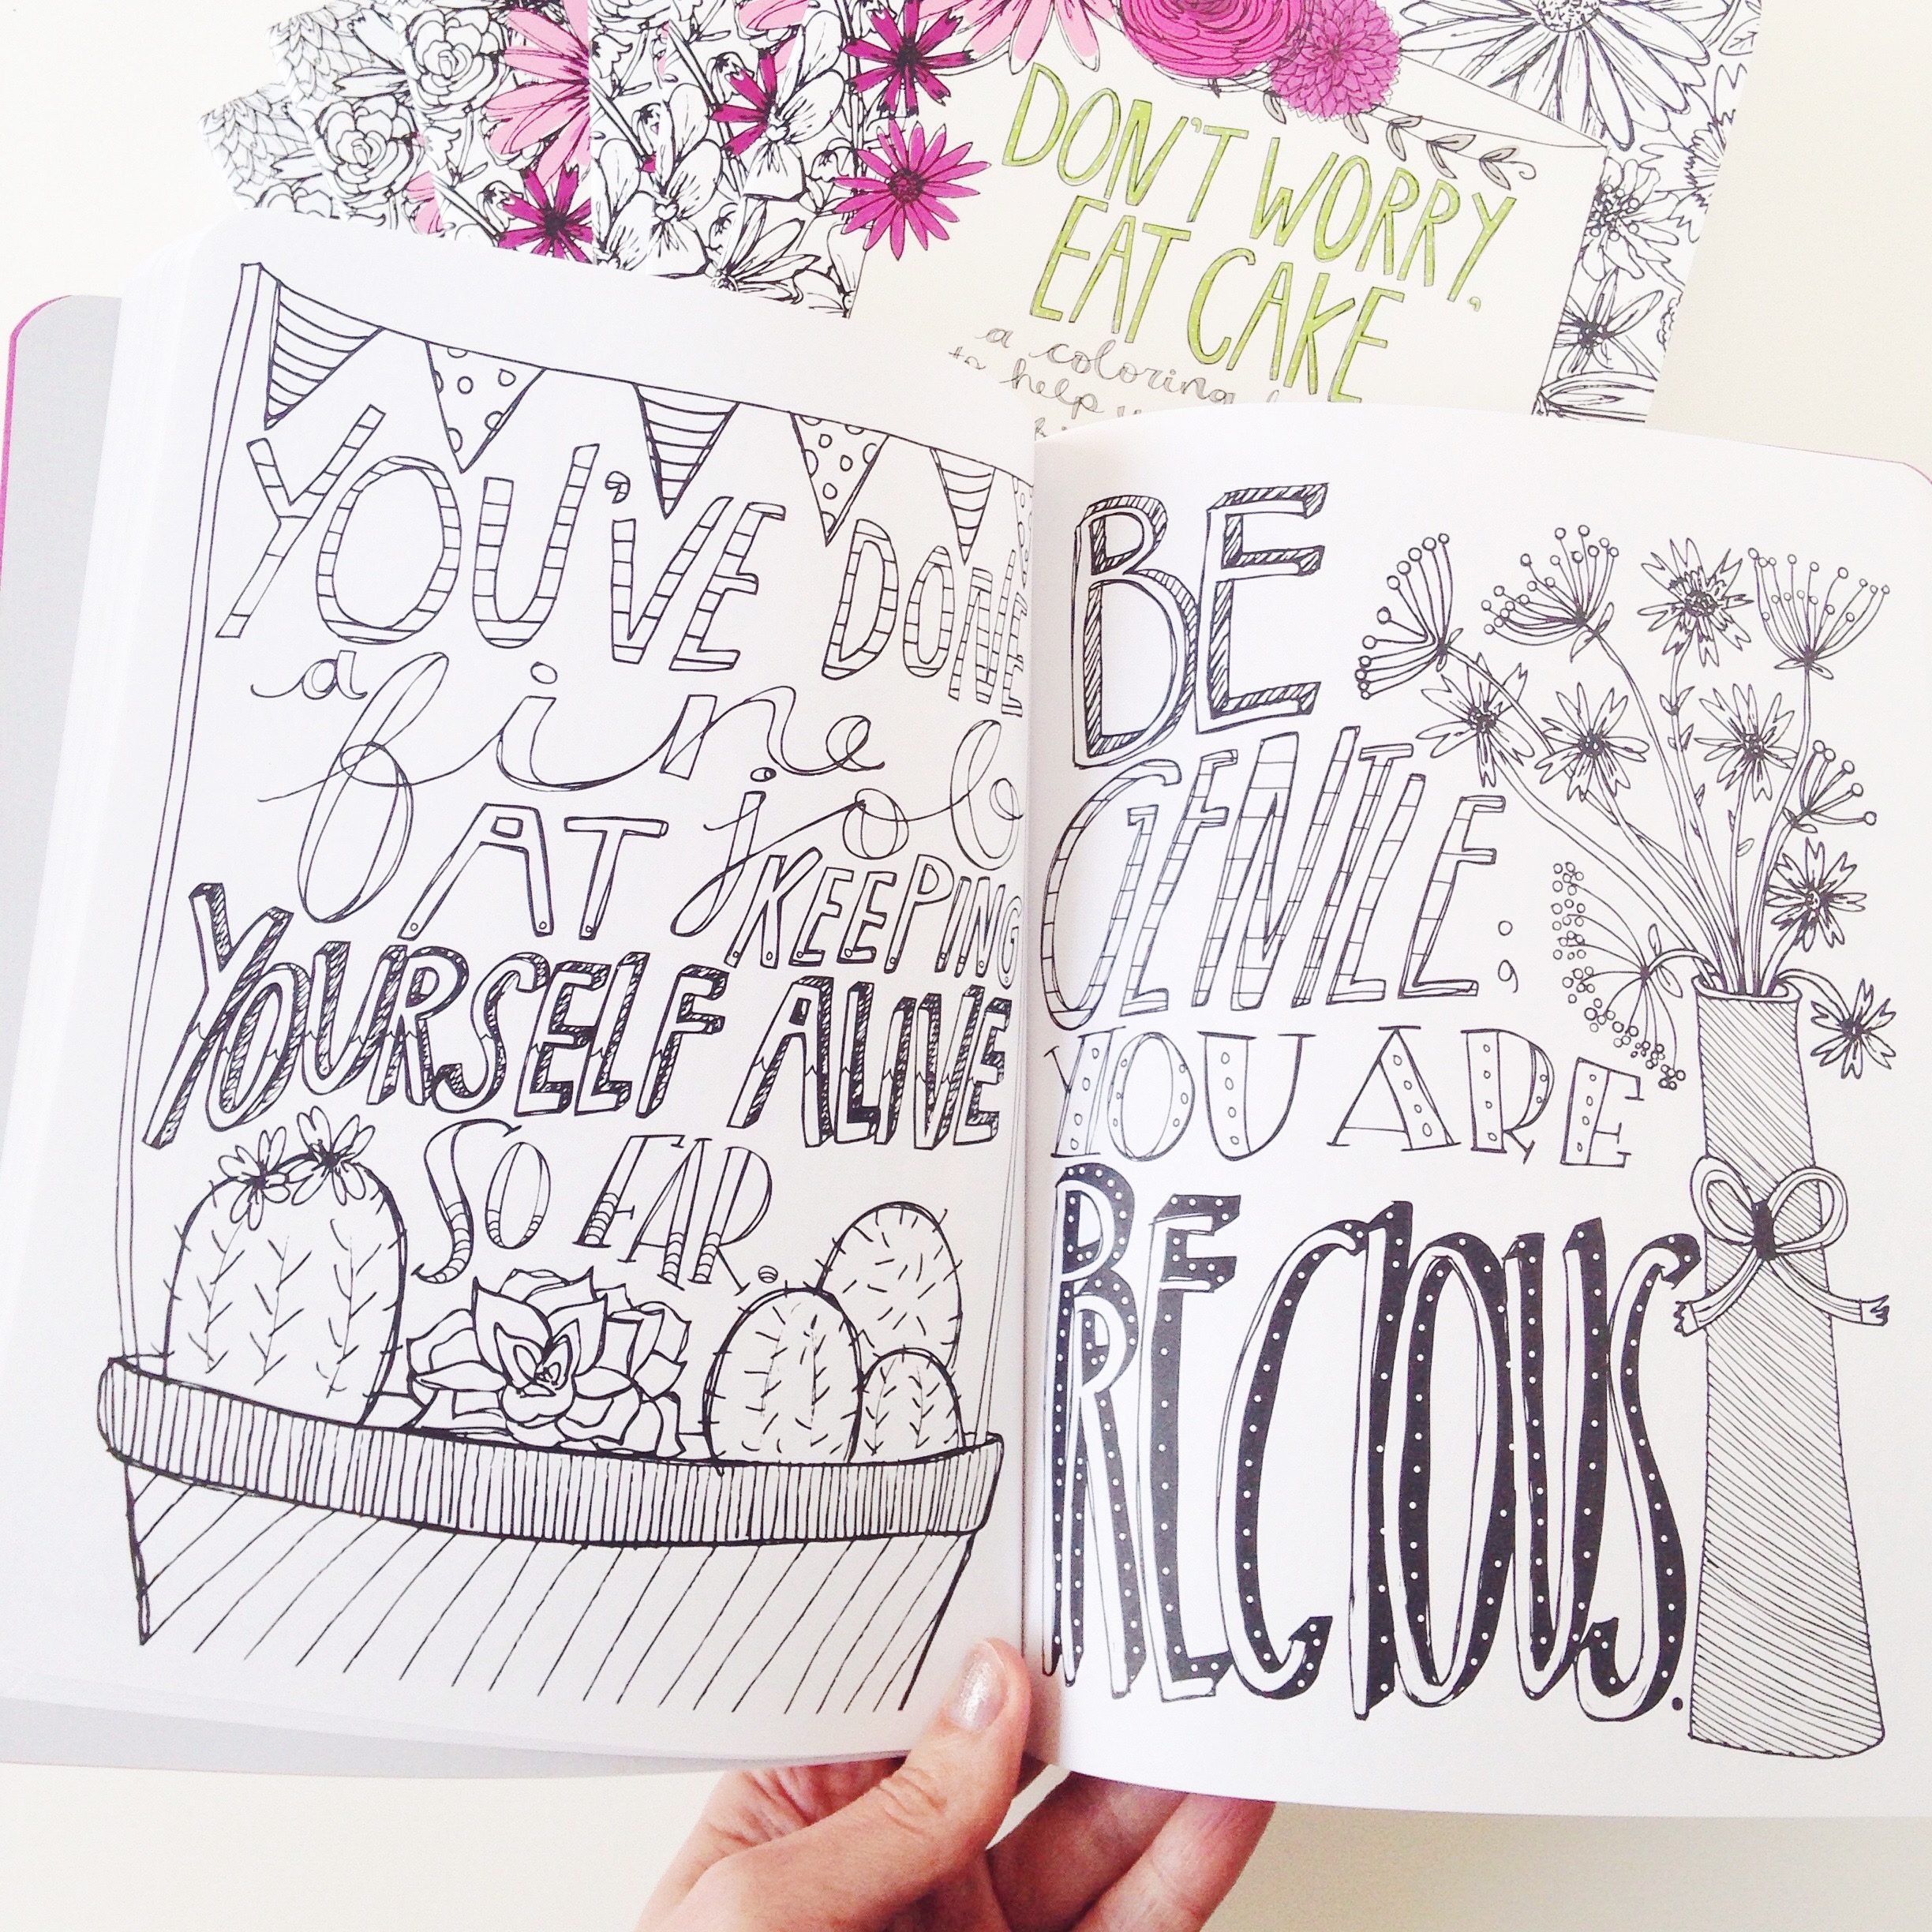 Don't Worry, Eat Cake coloring book